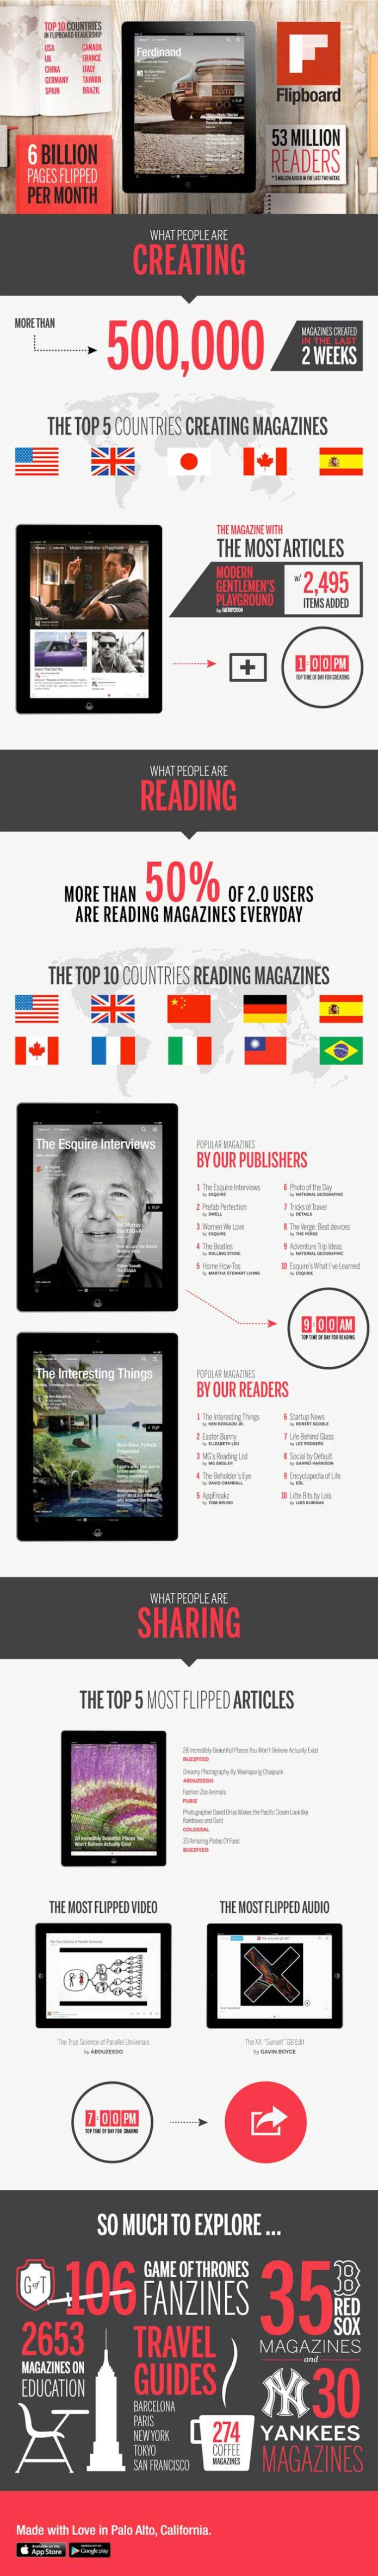 Infographic Flipboard Make Your Own Magazine